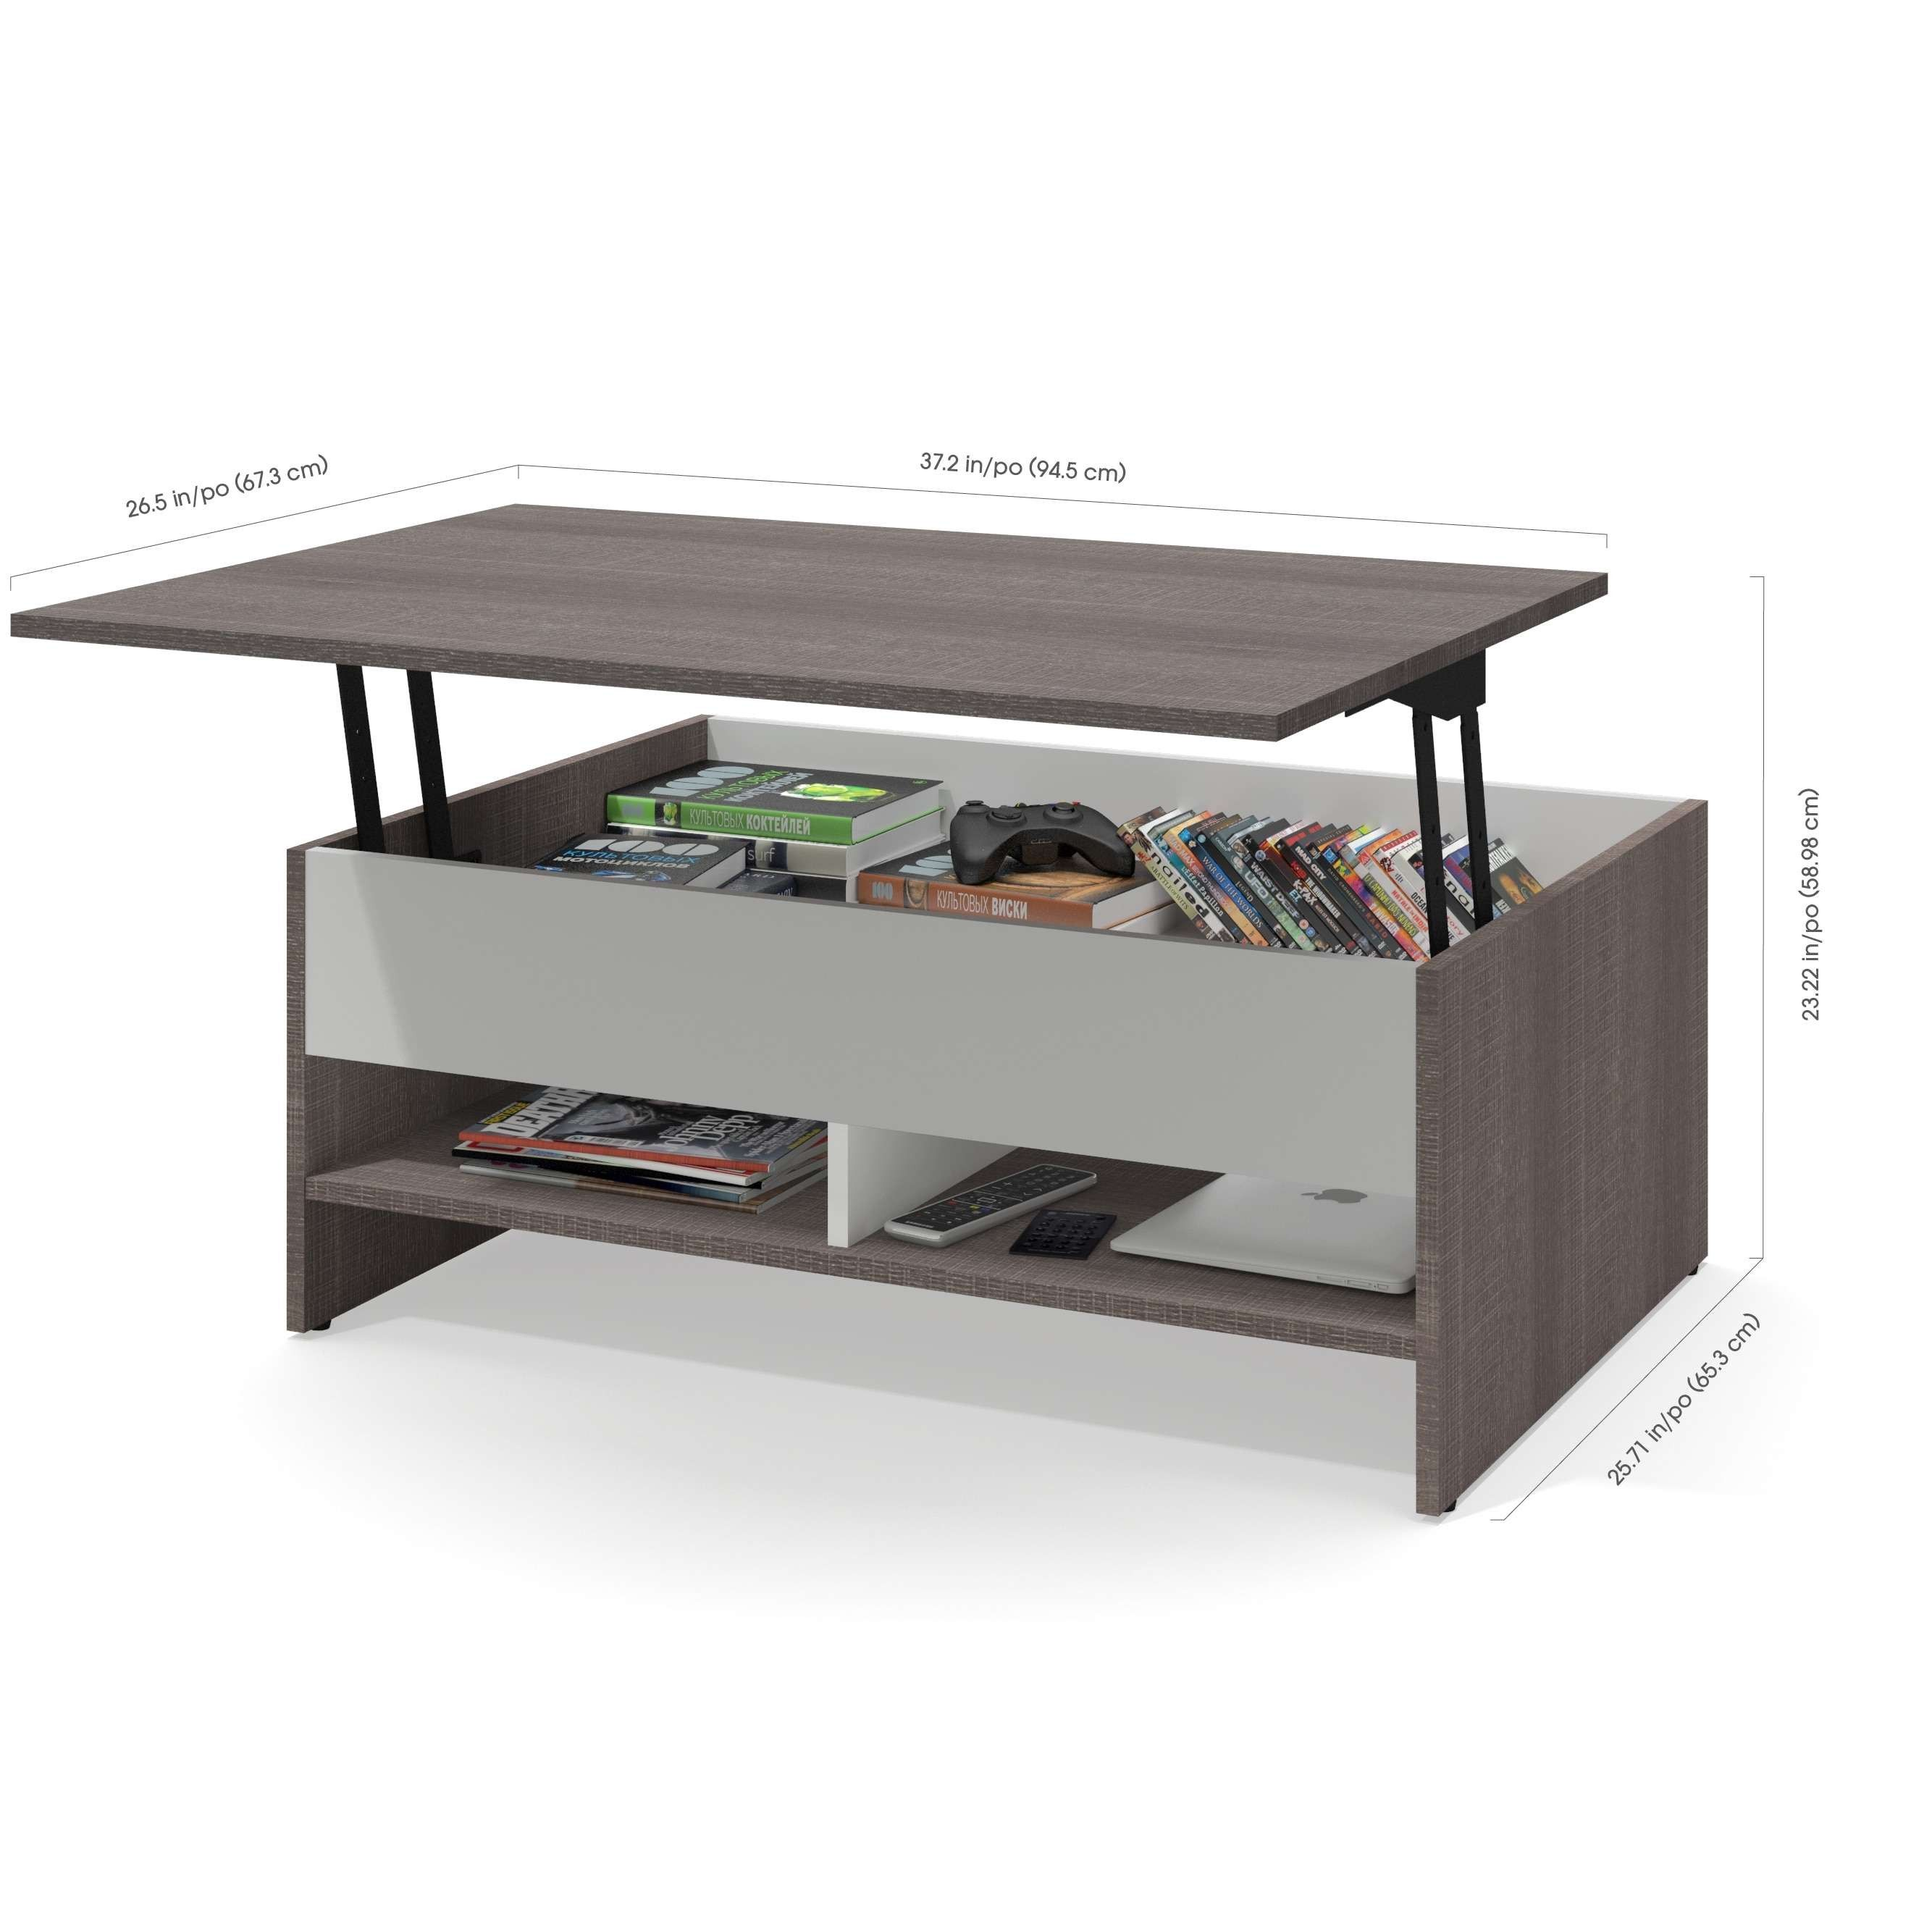 Coffee Table With Raisable Top Collection Lift Top Coffee Table With Drawers Fresh Bestar Sma Meja Kopi Ide Dekorasi Rumah Mebel